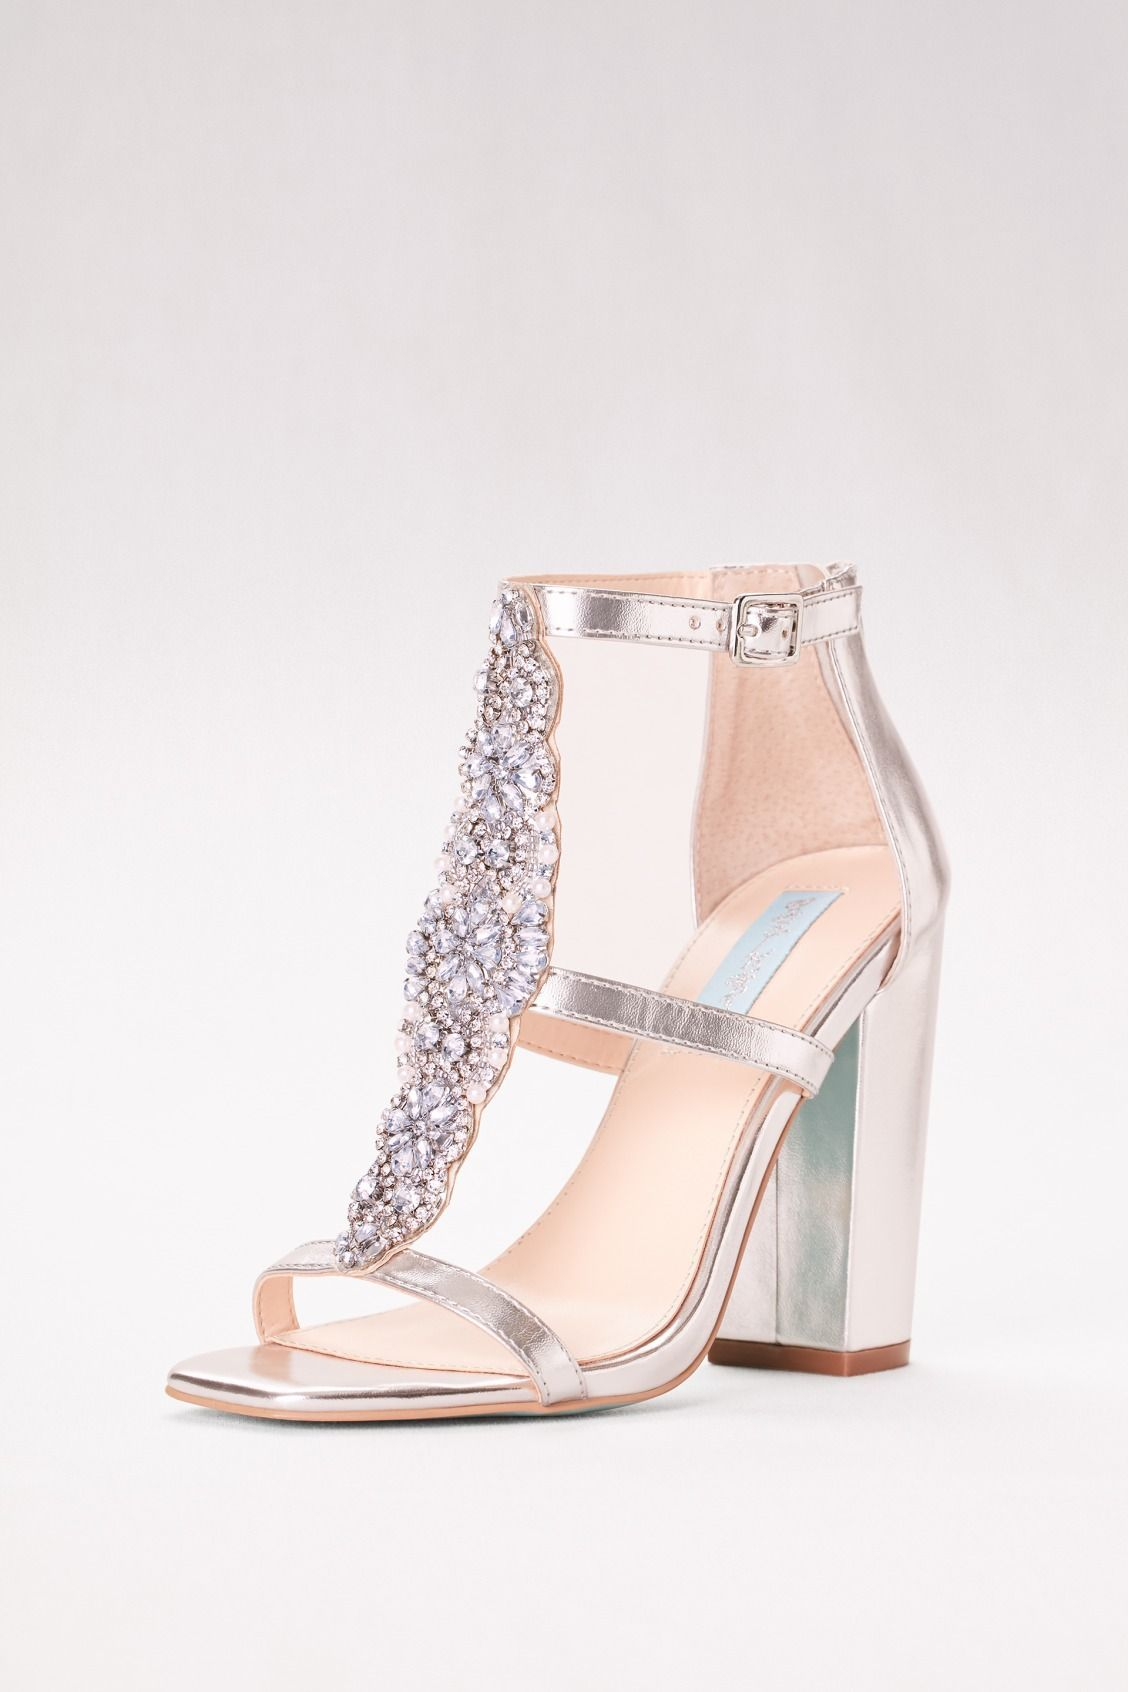 b77251883df This block heel will allow you to dance all night in comfort and style!